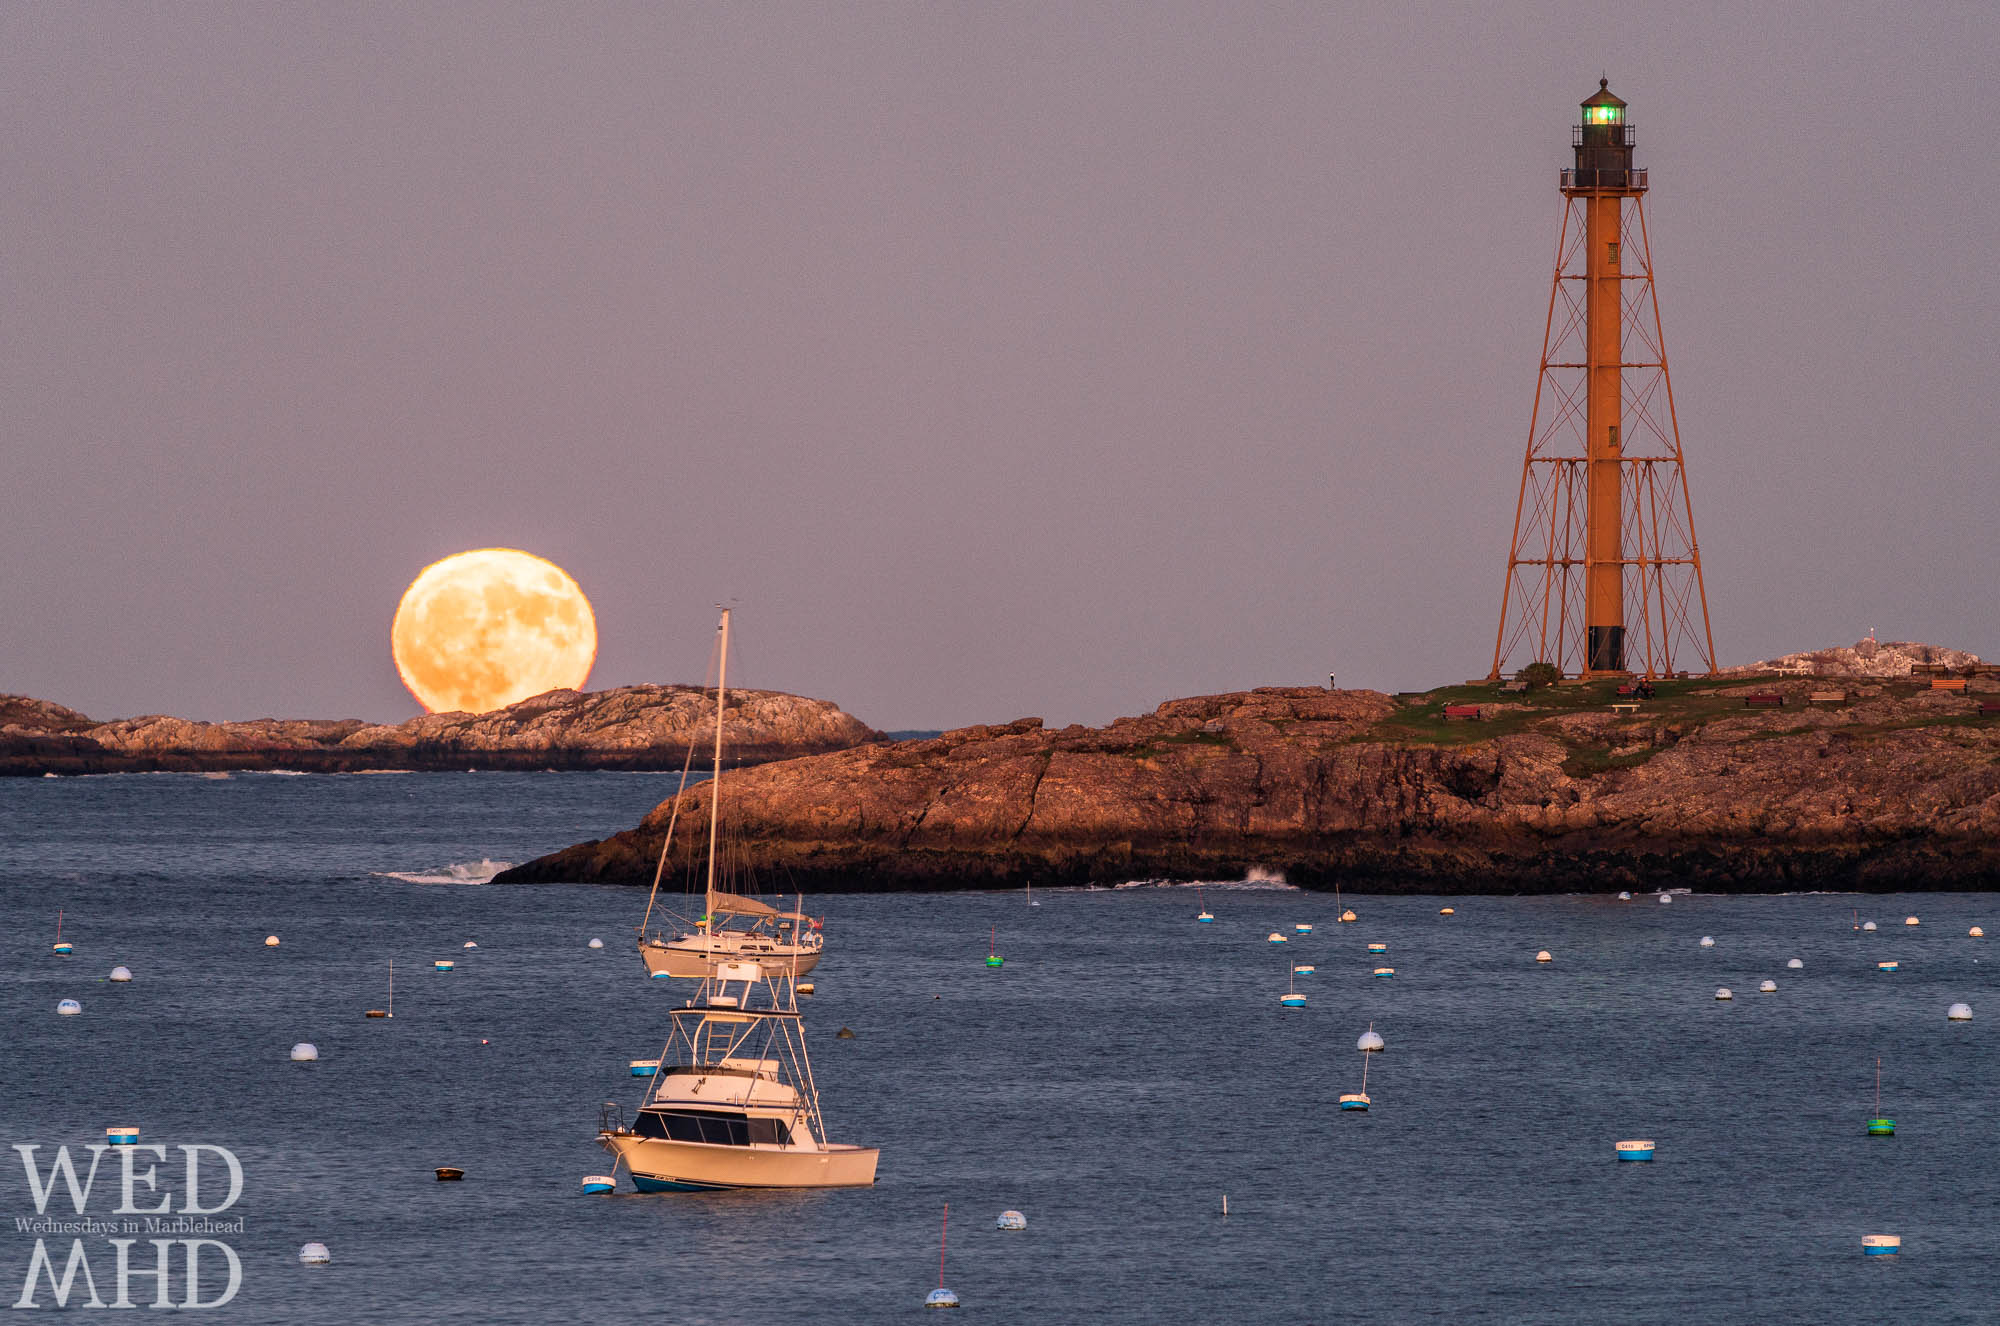 A rare Halloween blue moon rises behind Childrens Island and two boats still moored in the harbor while Marblehead Light's green beacon shines